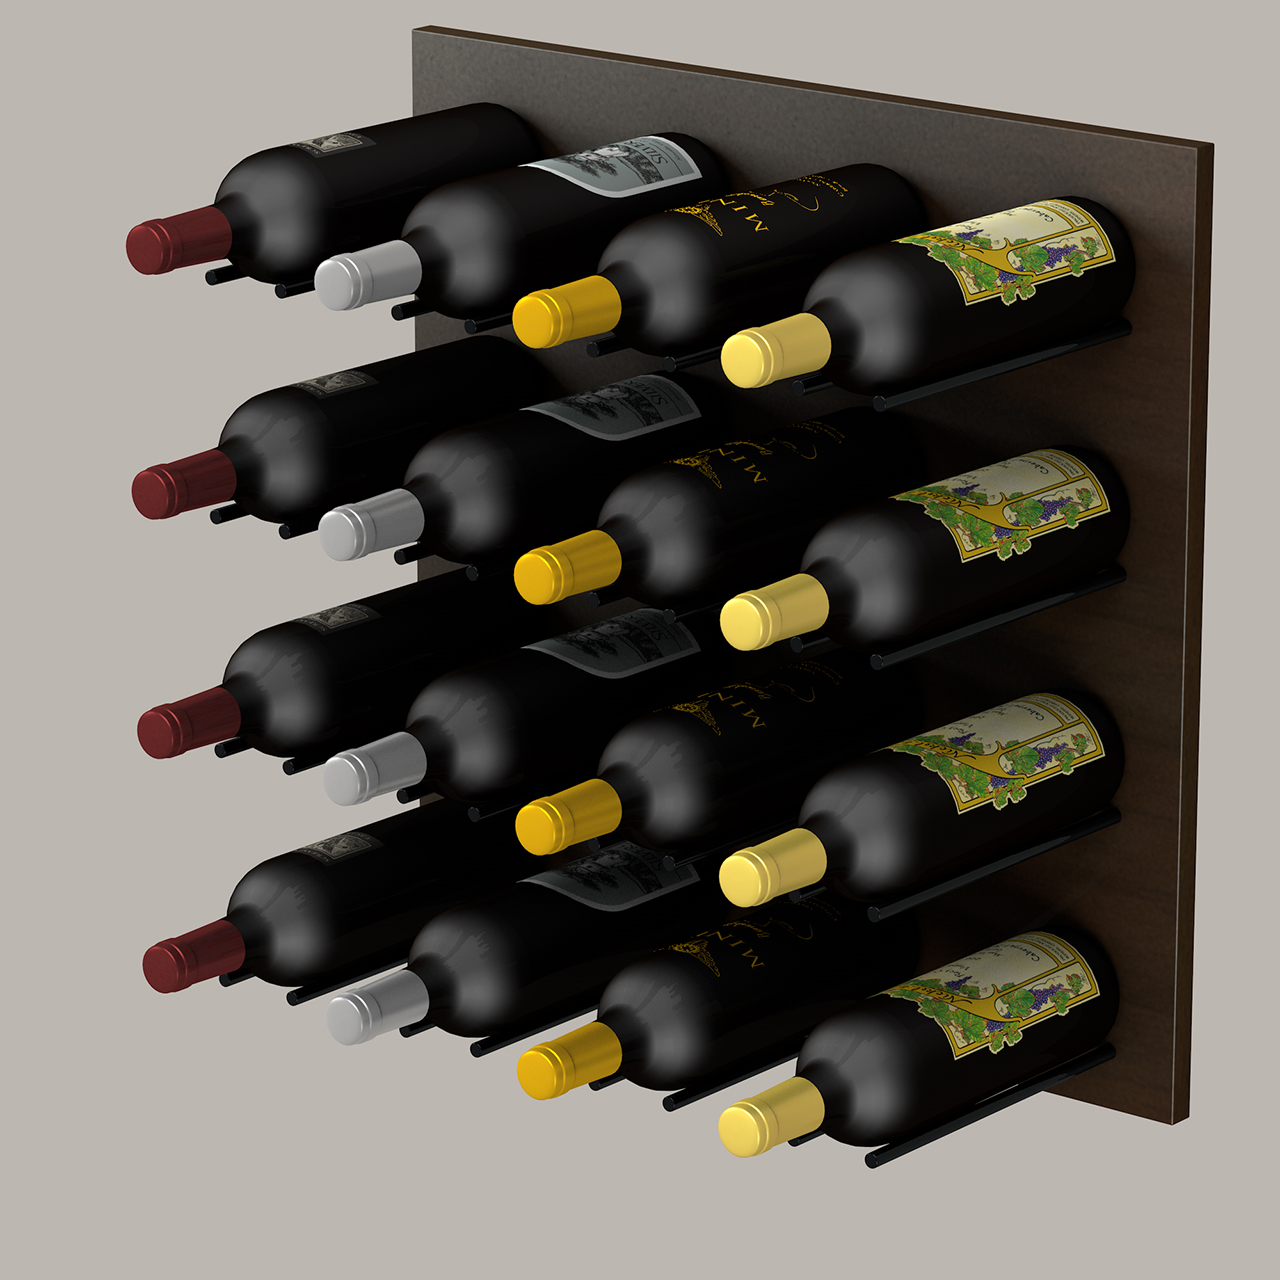 Wine Bottle Peg System Vv Vr Vino Rails Wine Racks